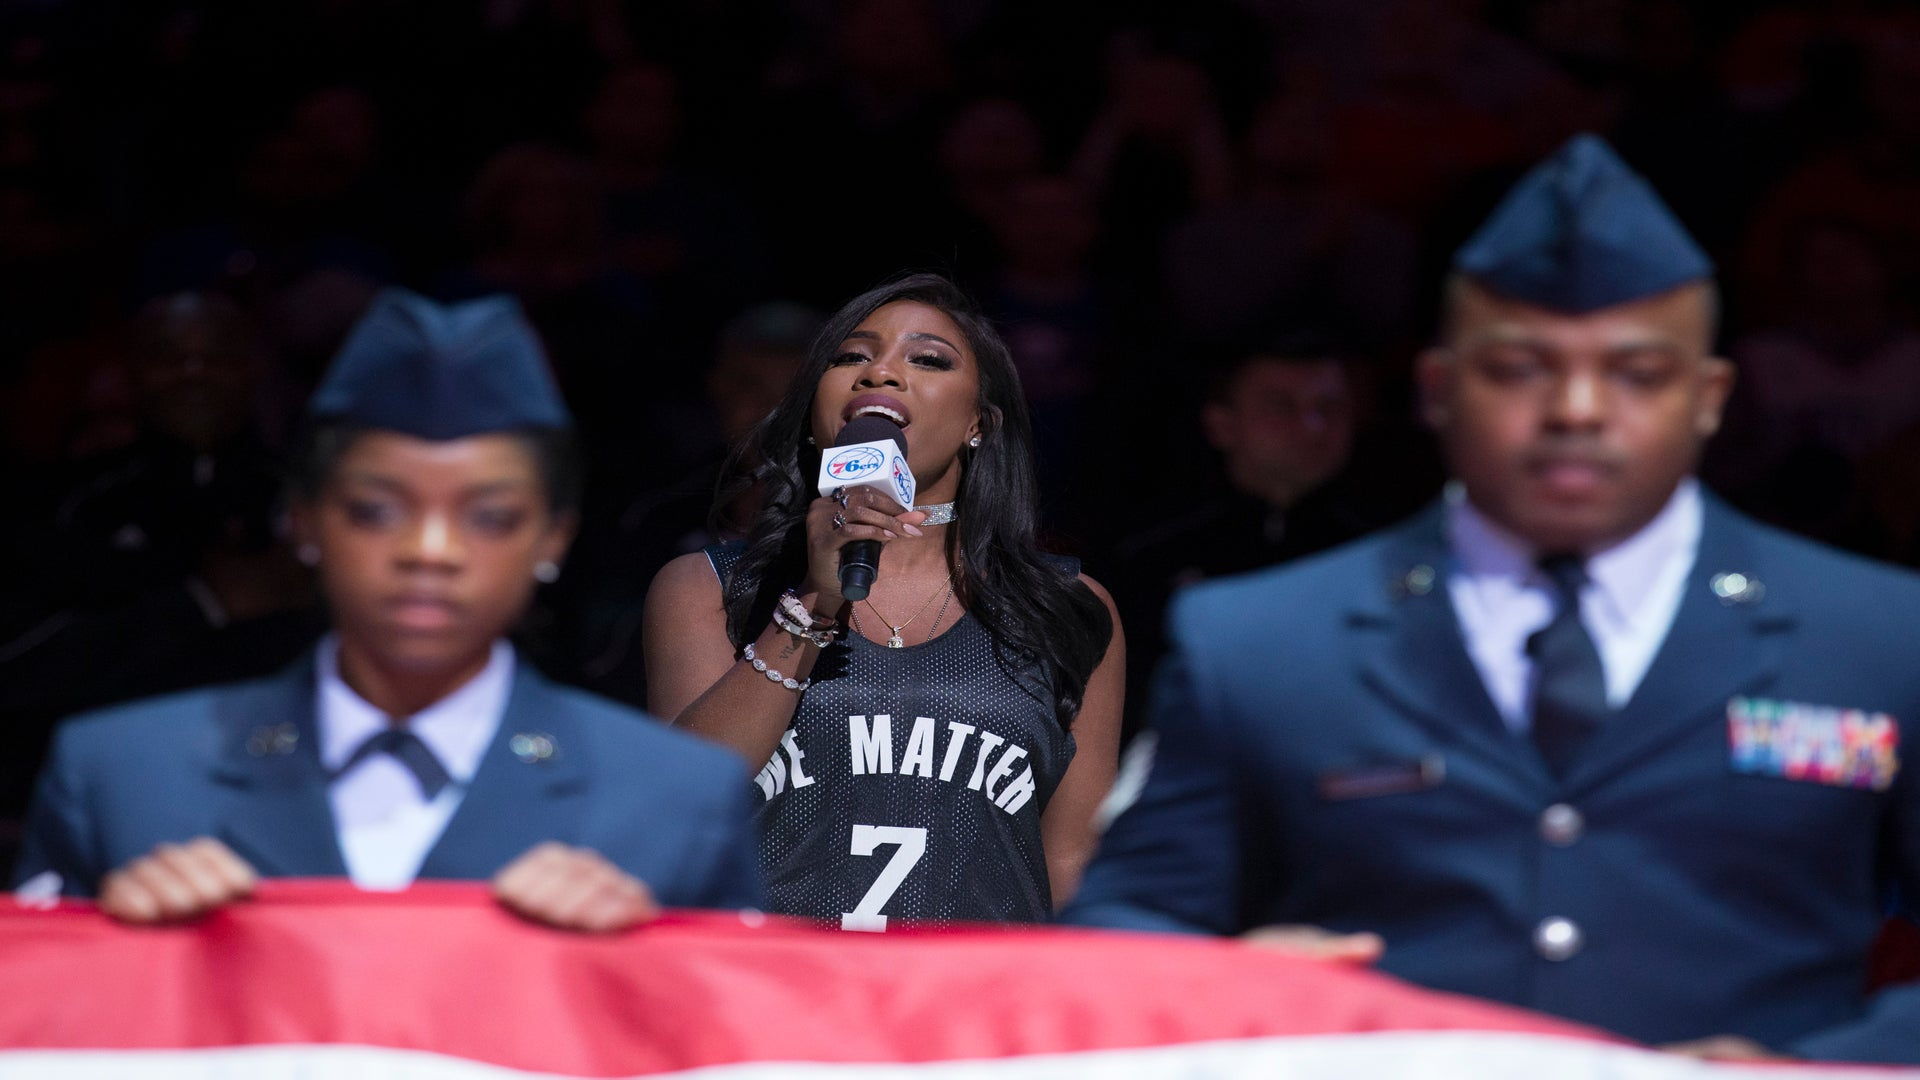 Sevyn Streeter Nails The National Anthem At The Sixers Game…In Her 'We Matter' Jersey